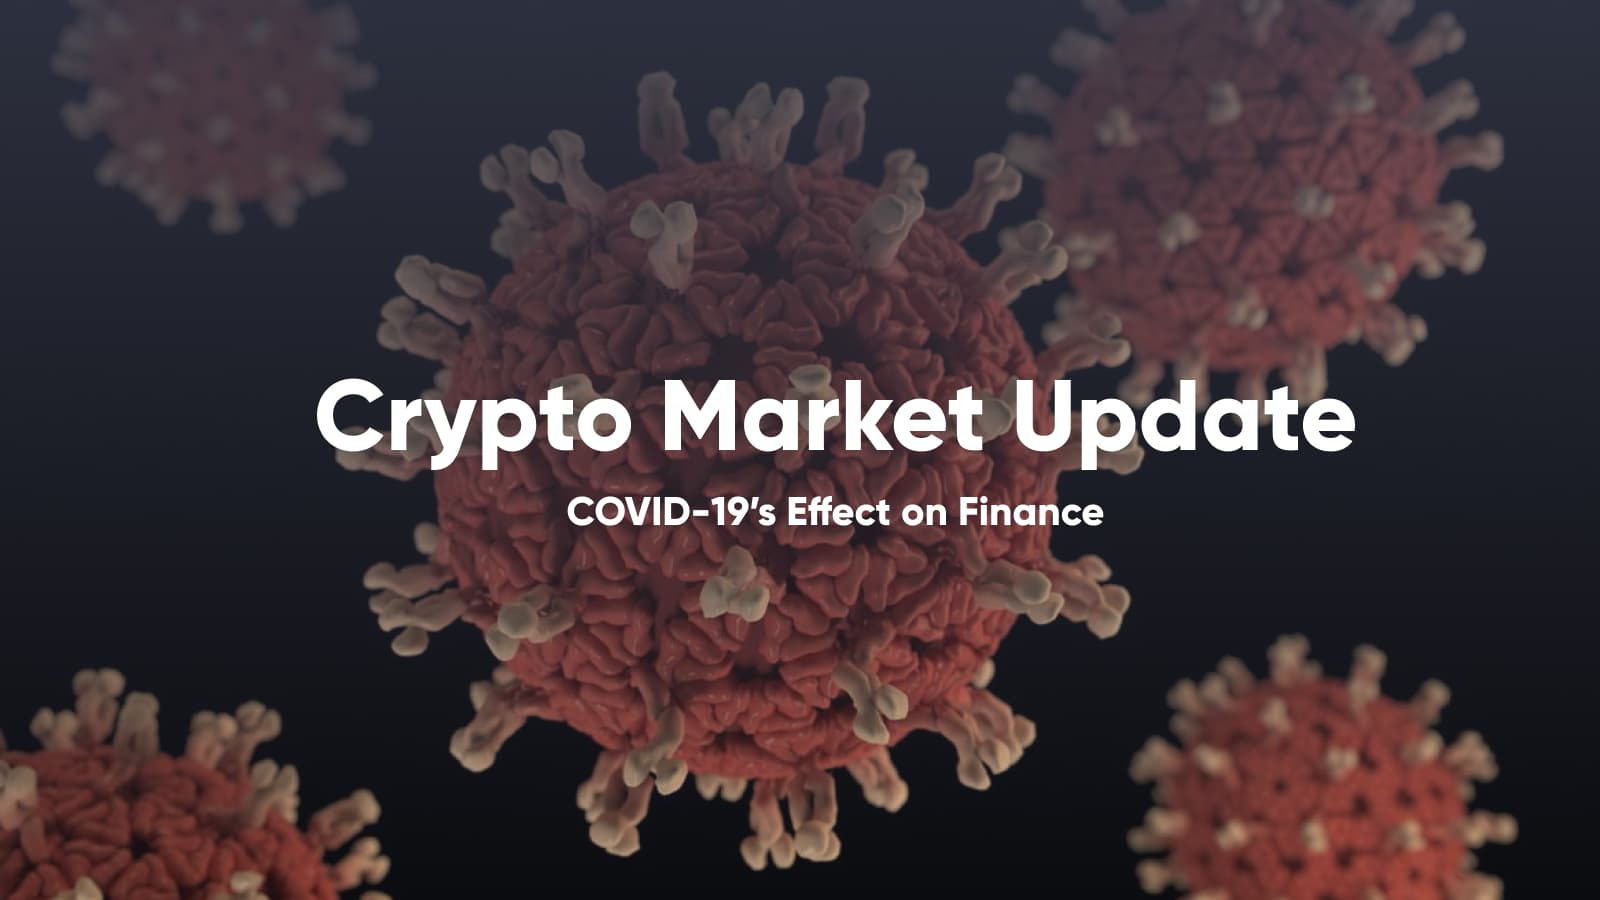 coronavirus covid-19 cryptocurrencies cryptocurrency bitcoin ethereum finance market